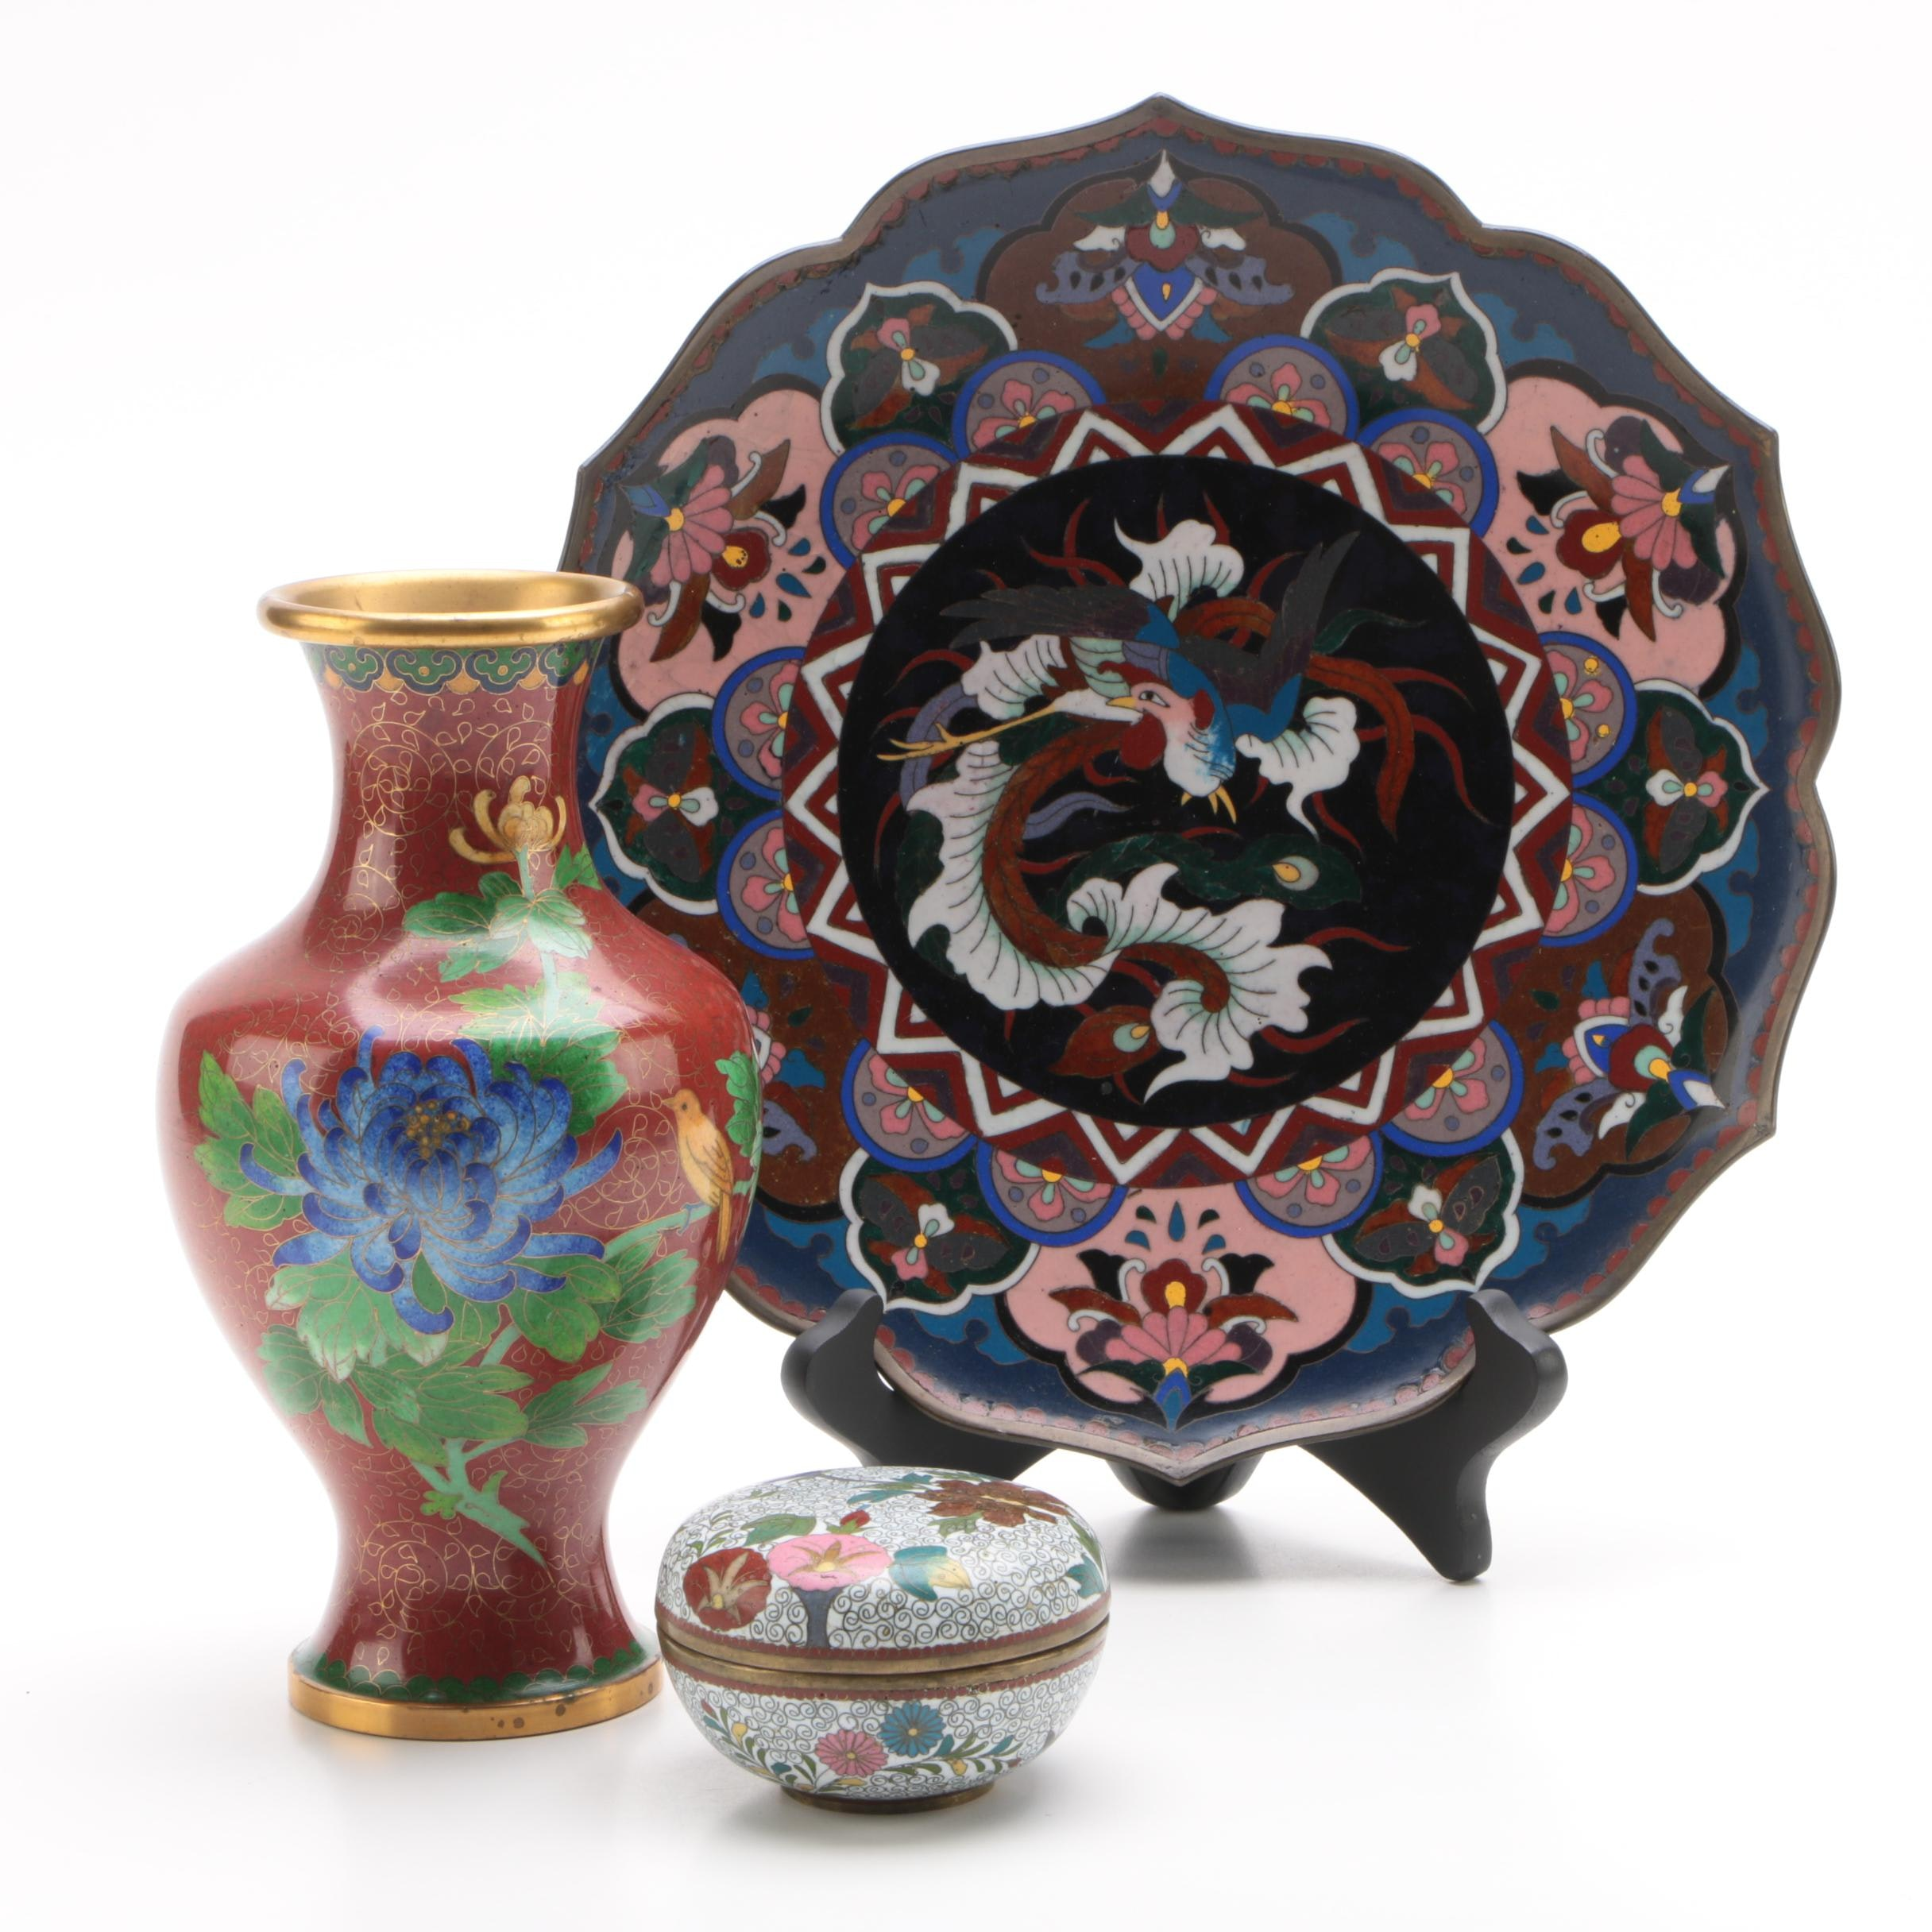 Vintage Cloisonné Vase, Plate with Stand, and Trinket Box